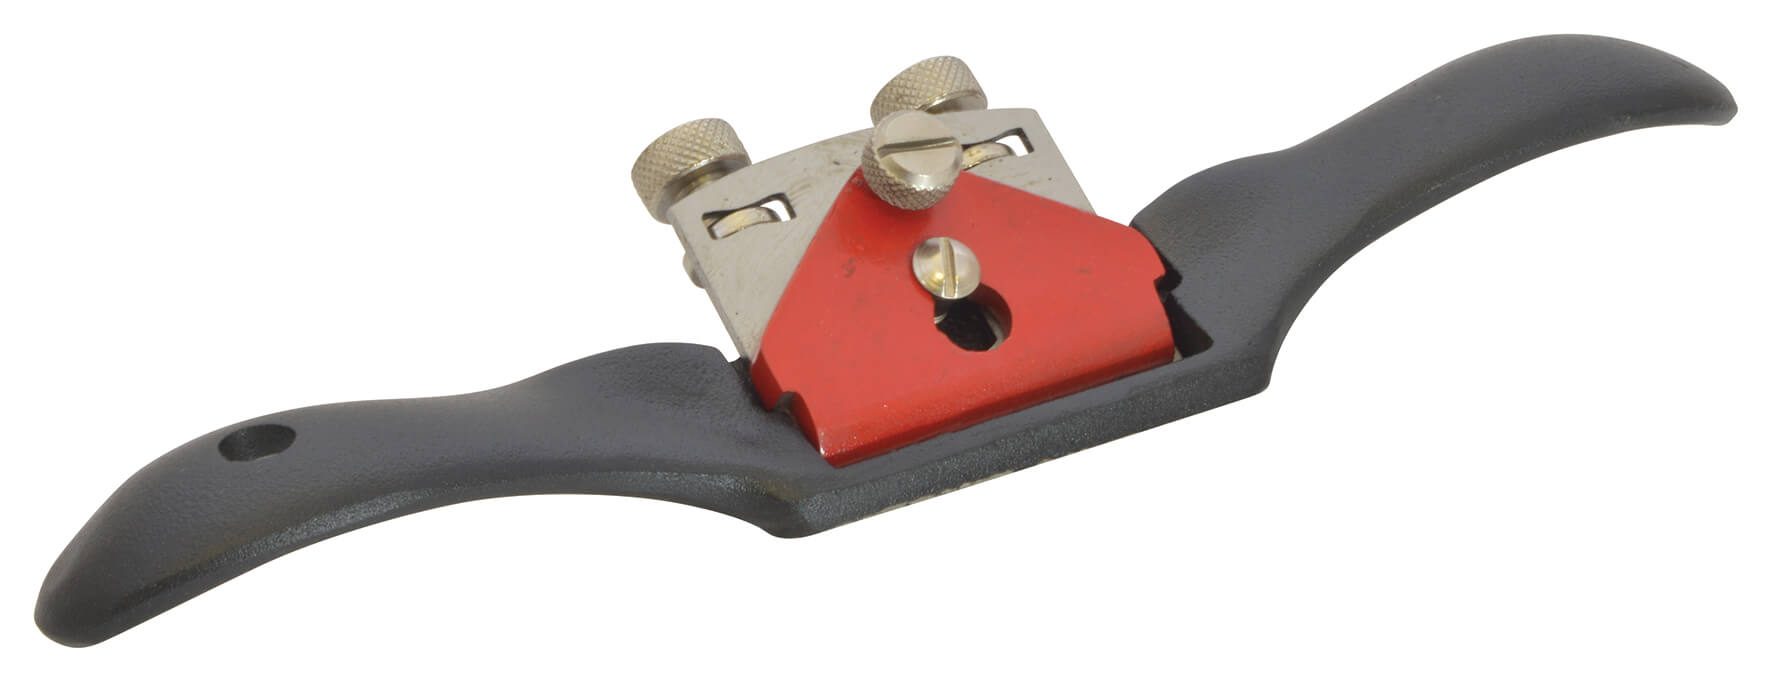 Brook Convex Spokeshave No.151R